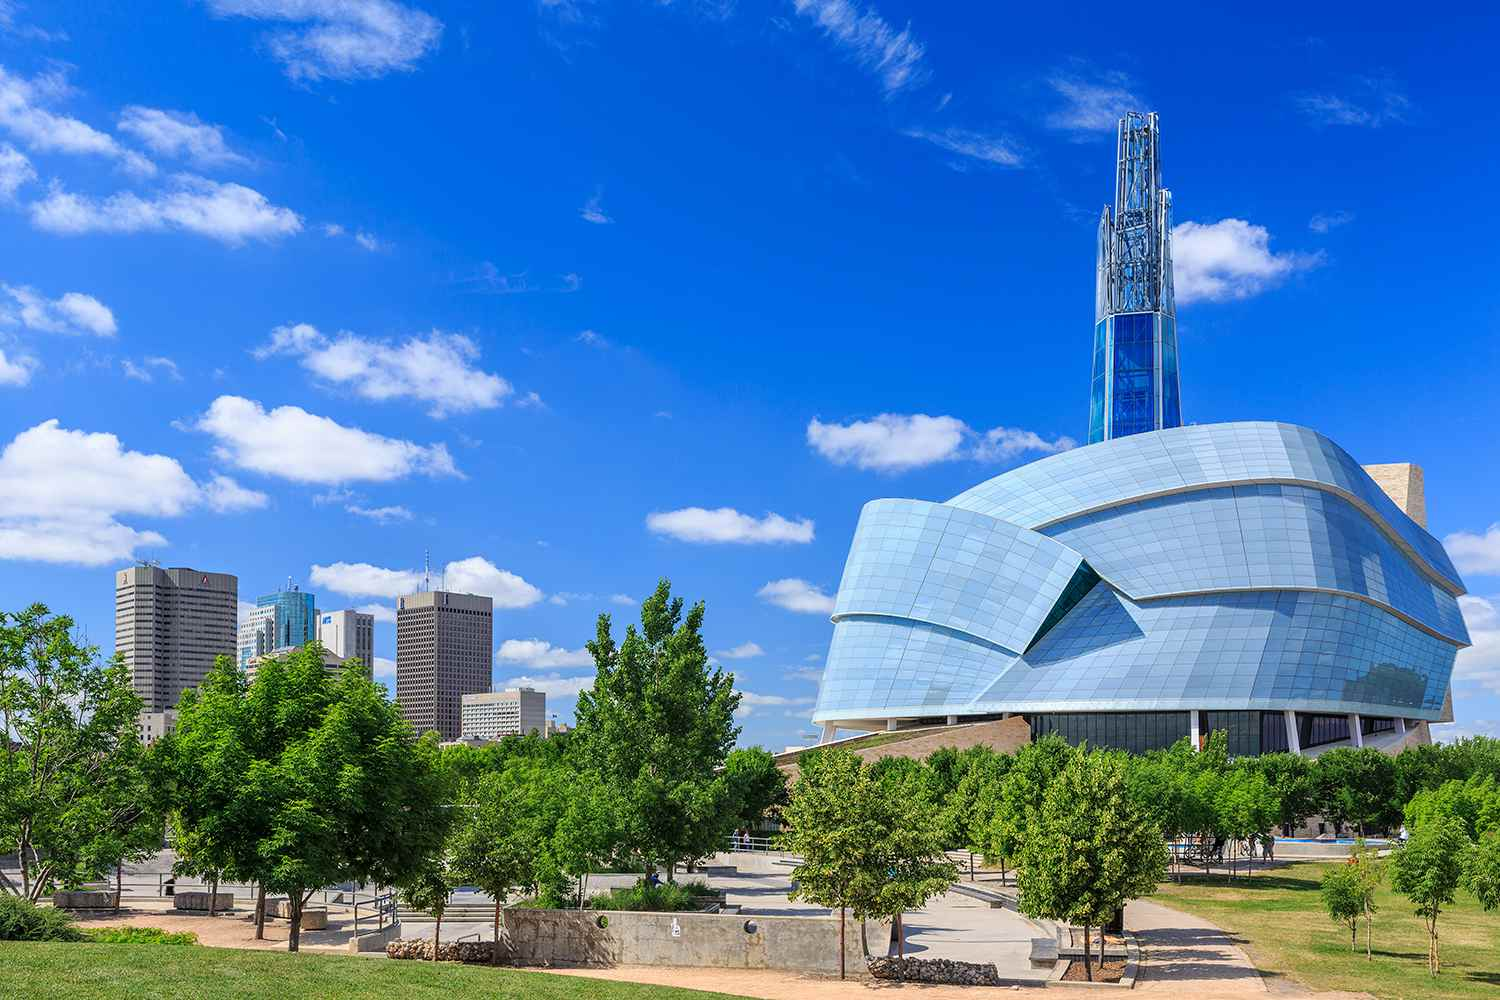 The postmodern architecture of the Canadian Museum for Human Rights at the Forks in Winnipeg